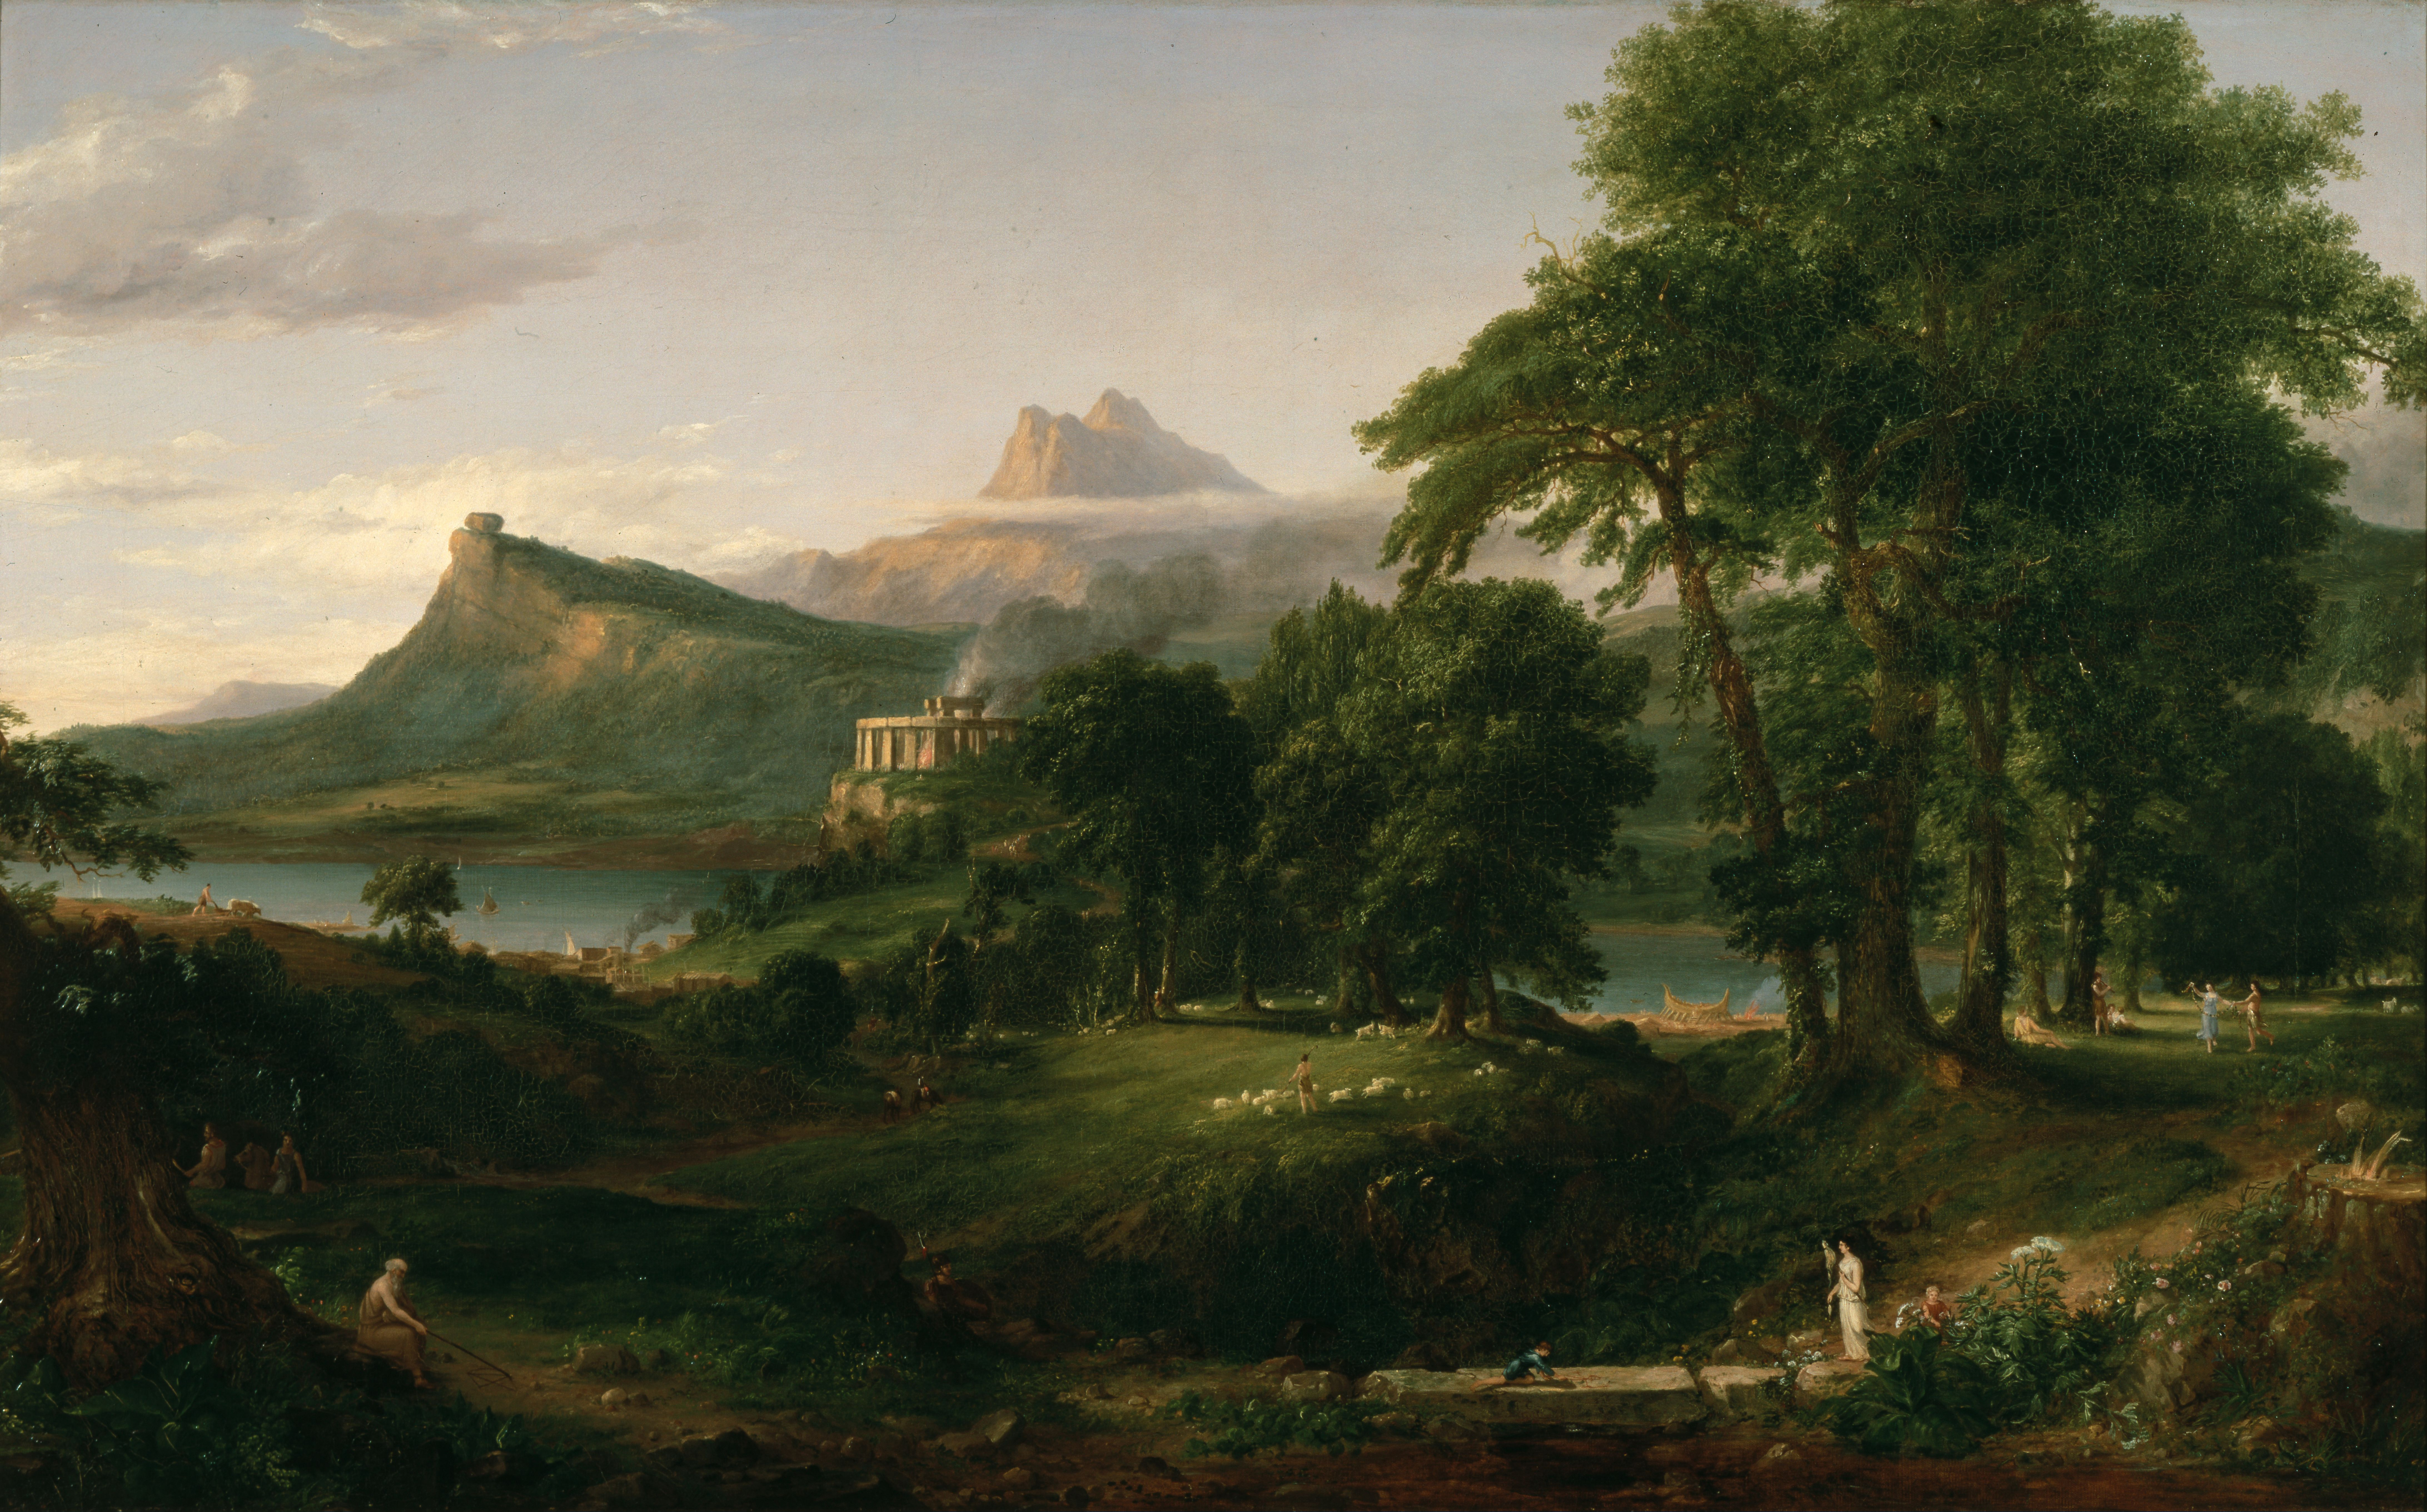 Thomas Cole, The Arcadian or Pastoral State, 1834